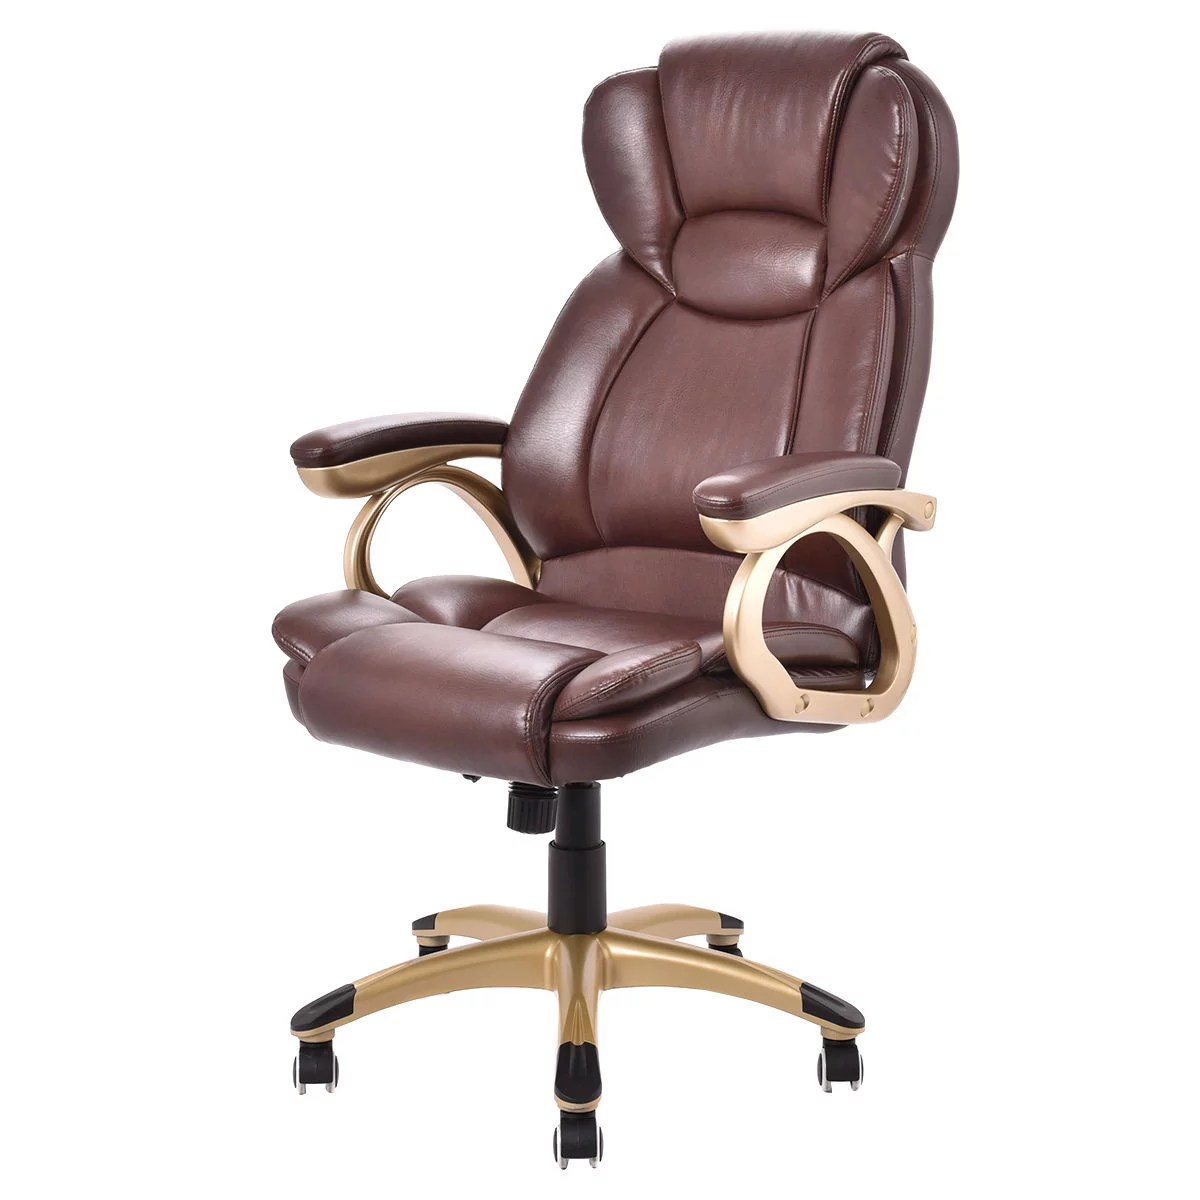 staples turcotte chair brown swivel desk without wheels high back office contemporary urban home ideas costway ergonomic pu leather executive rh walmart com deluxe